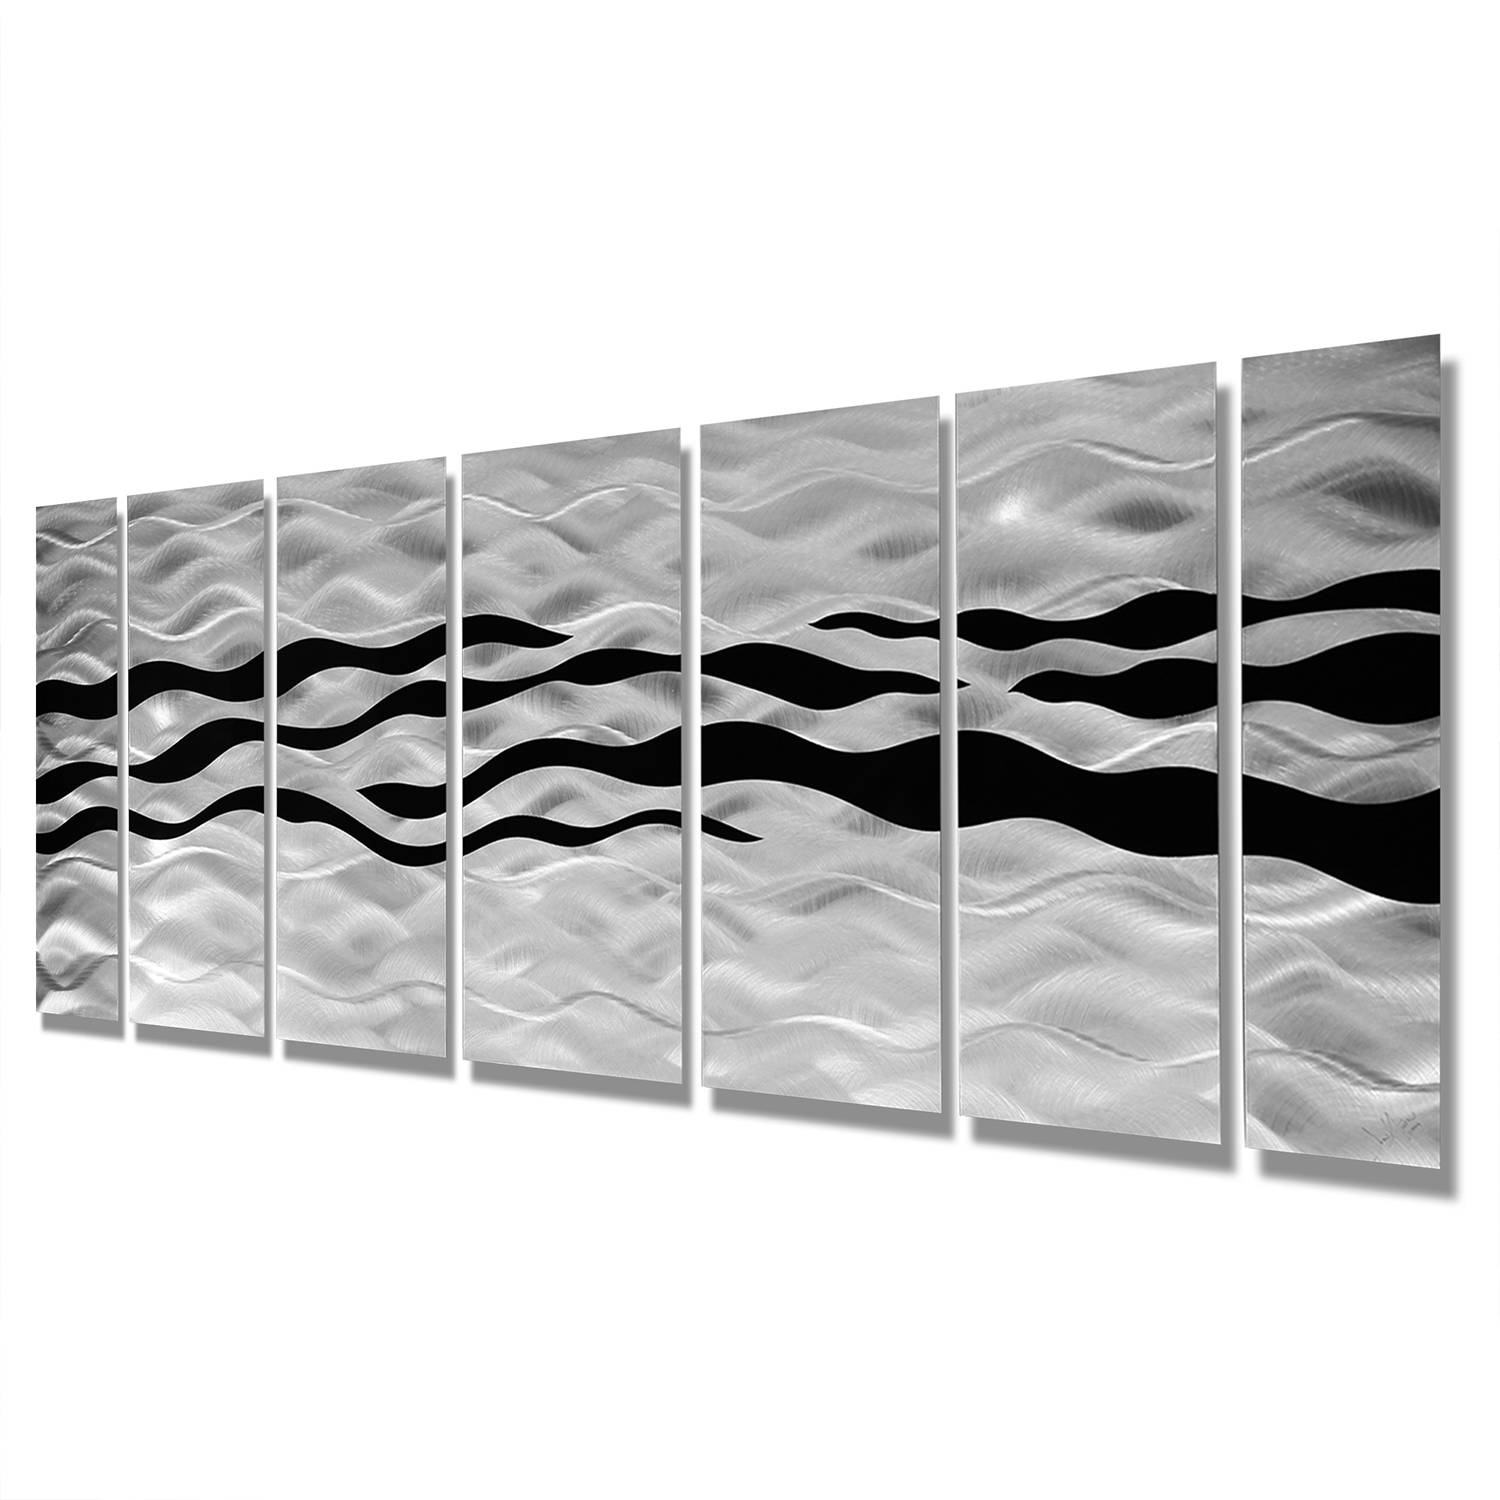 Wild Ways – Silver And Black Modern Metallic Wall Hanging Intended For 2018 Contemporary Metal Wall Art Decor (View 17 of 20)